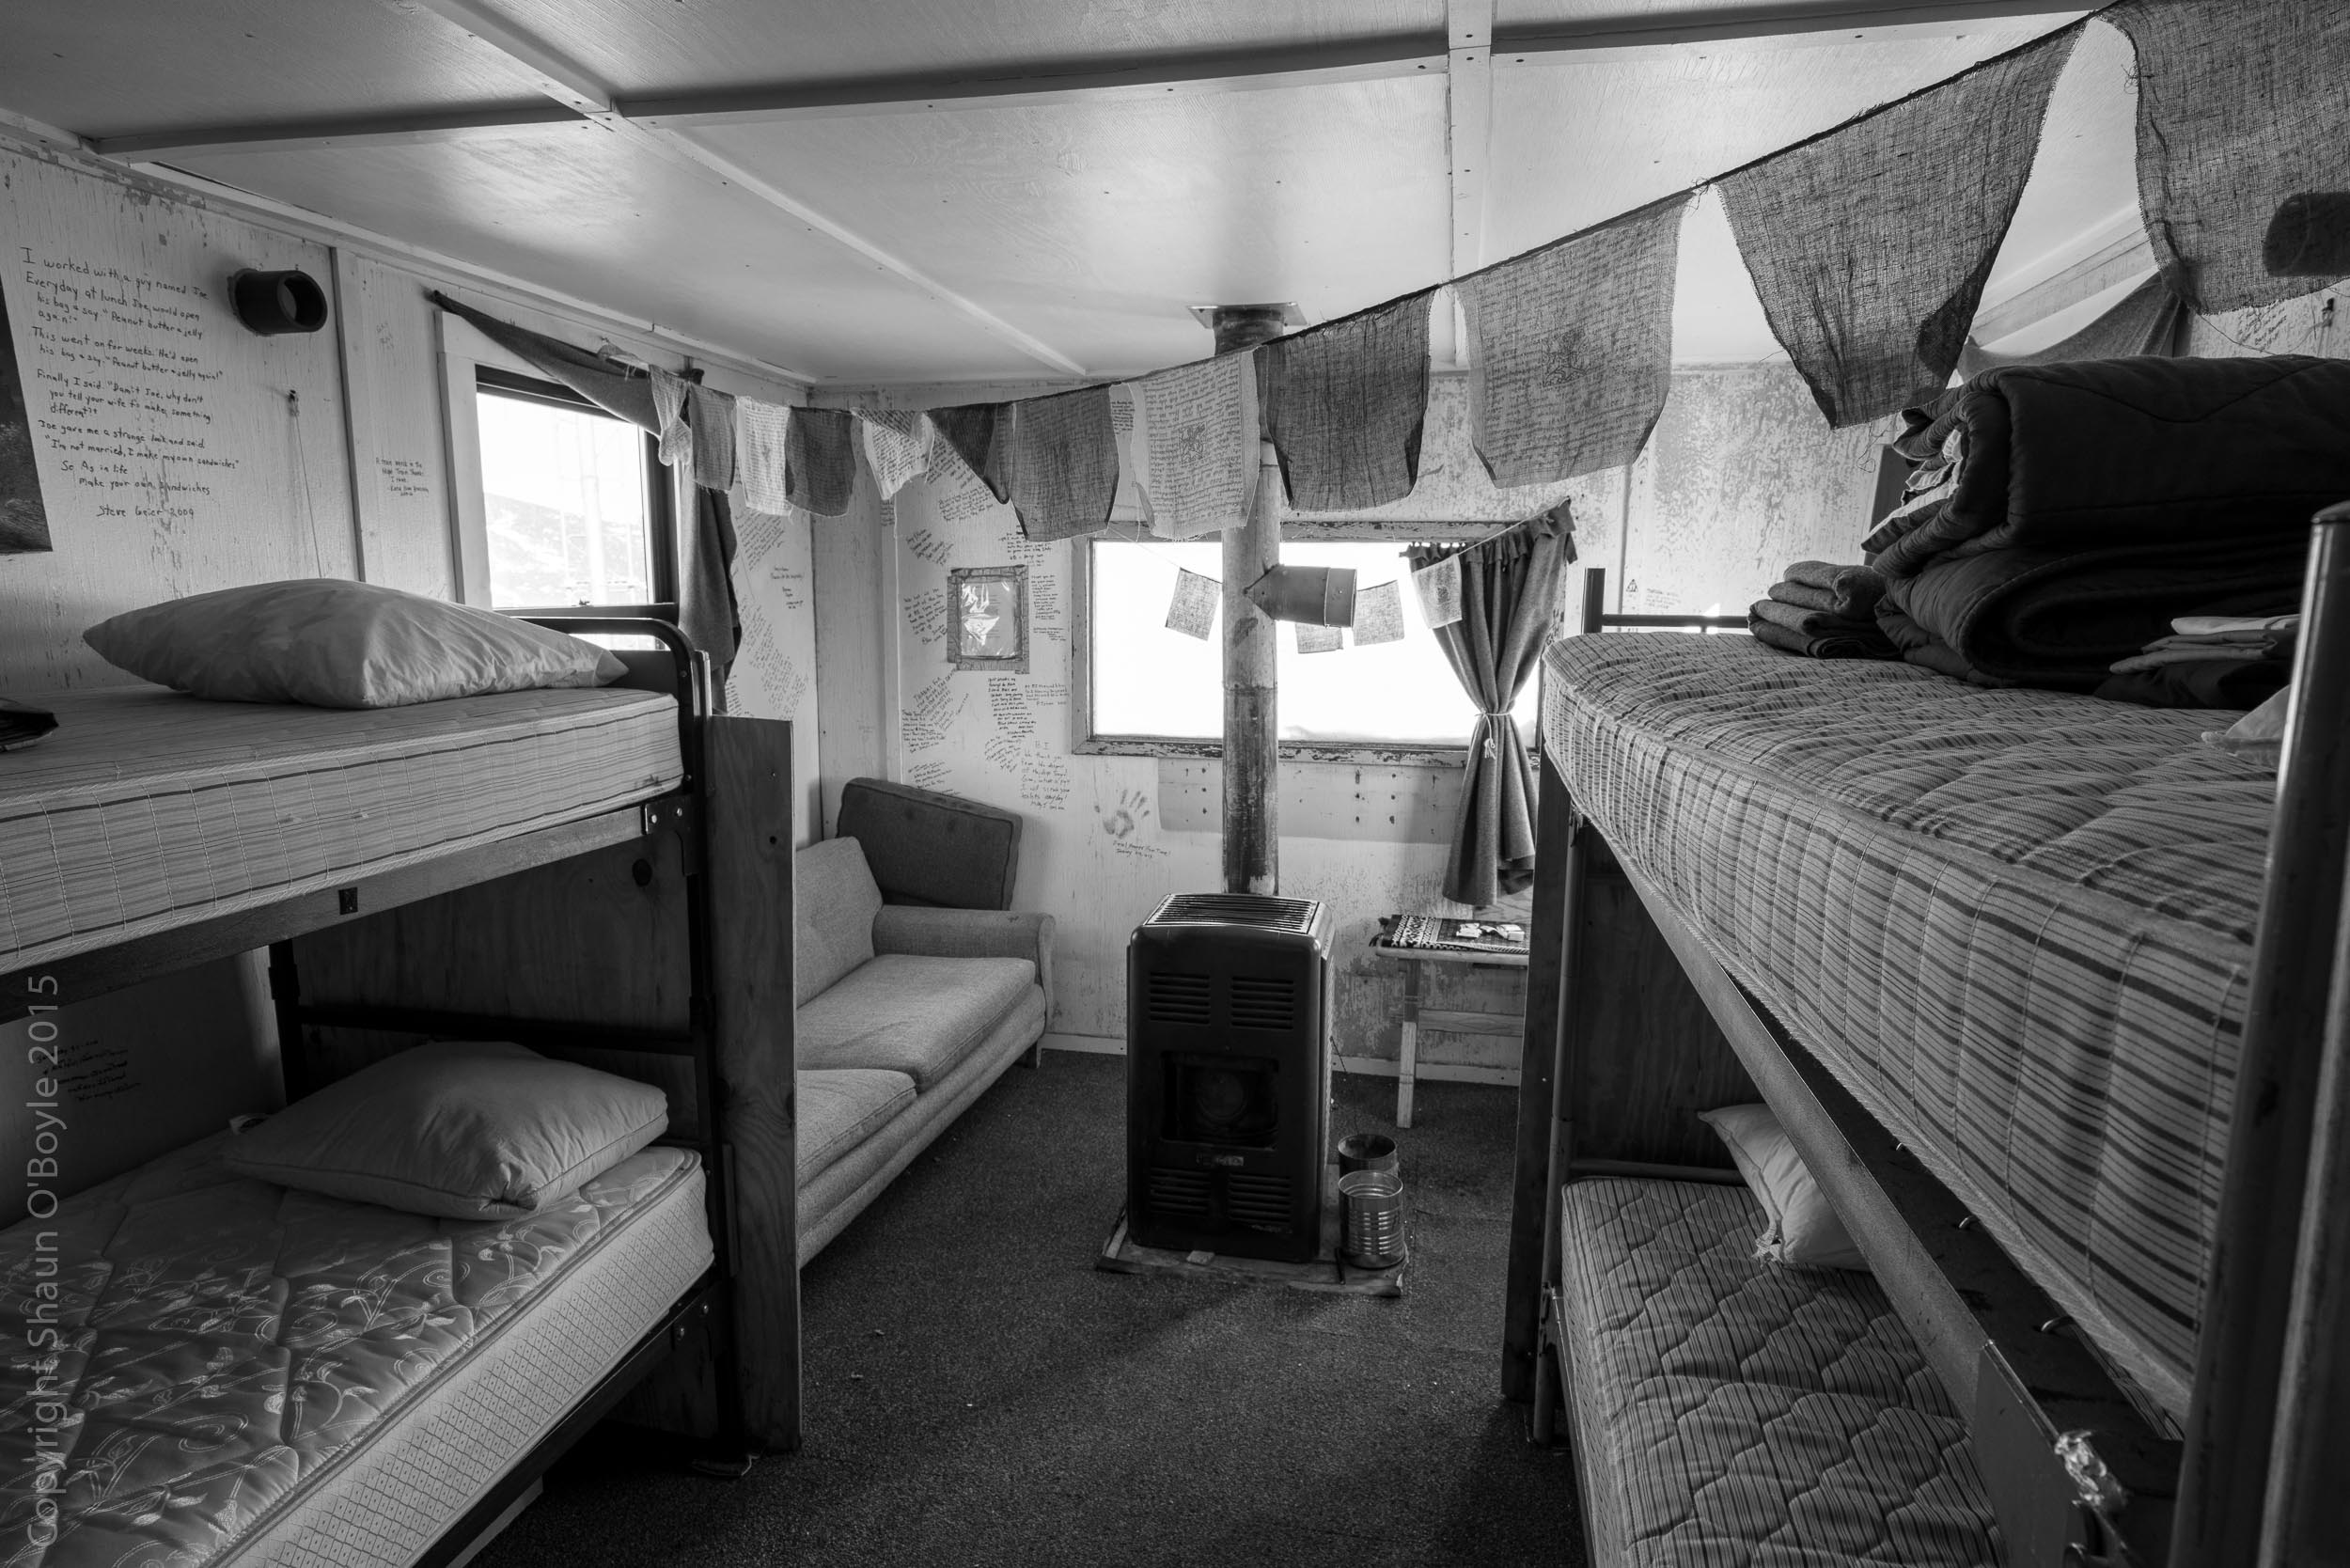 """Well signed bunkhouse at Black Island. If you watch the film """"Antarctica: A Year on the Ice"""" you will see this bunk house when the film maker Anthony Powell visits Black Island in the winter.The entire inside of this bunk house is filled with snow and ice from high winds and storms."""